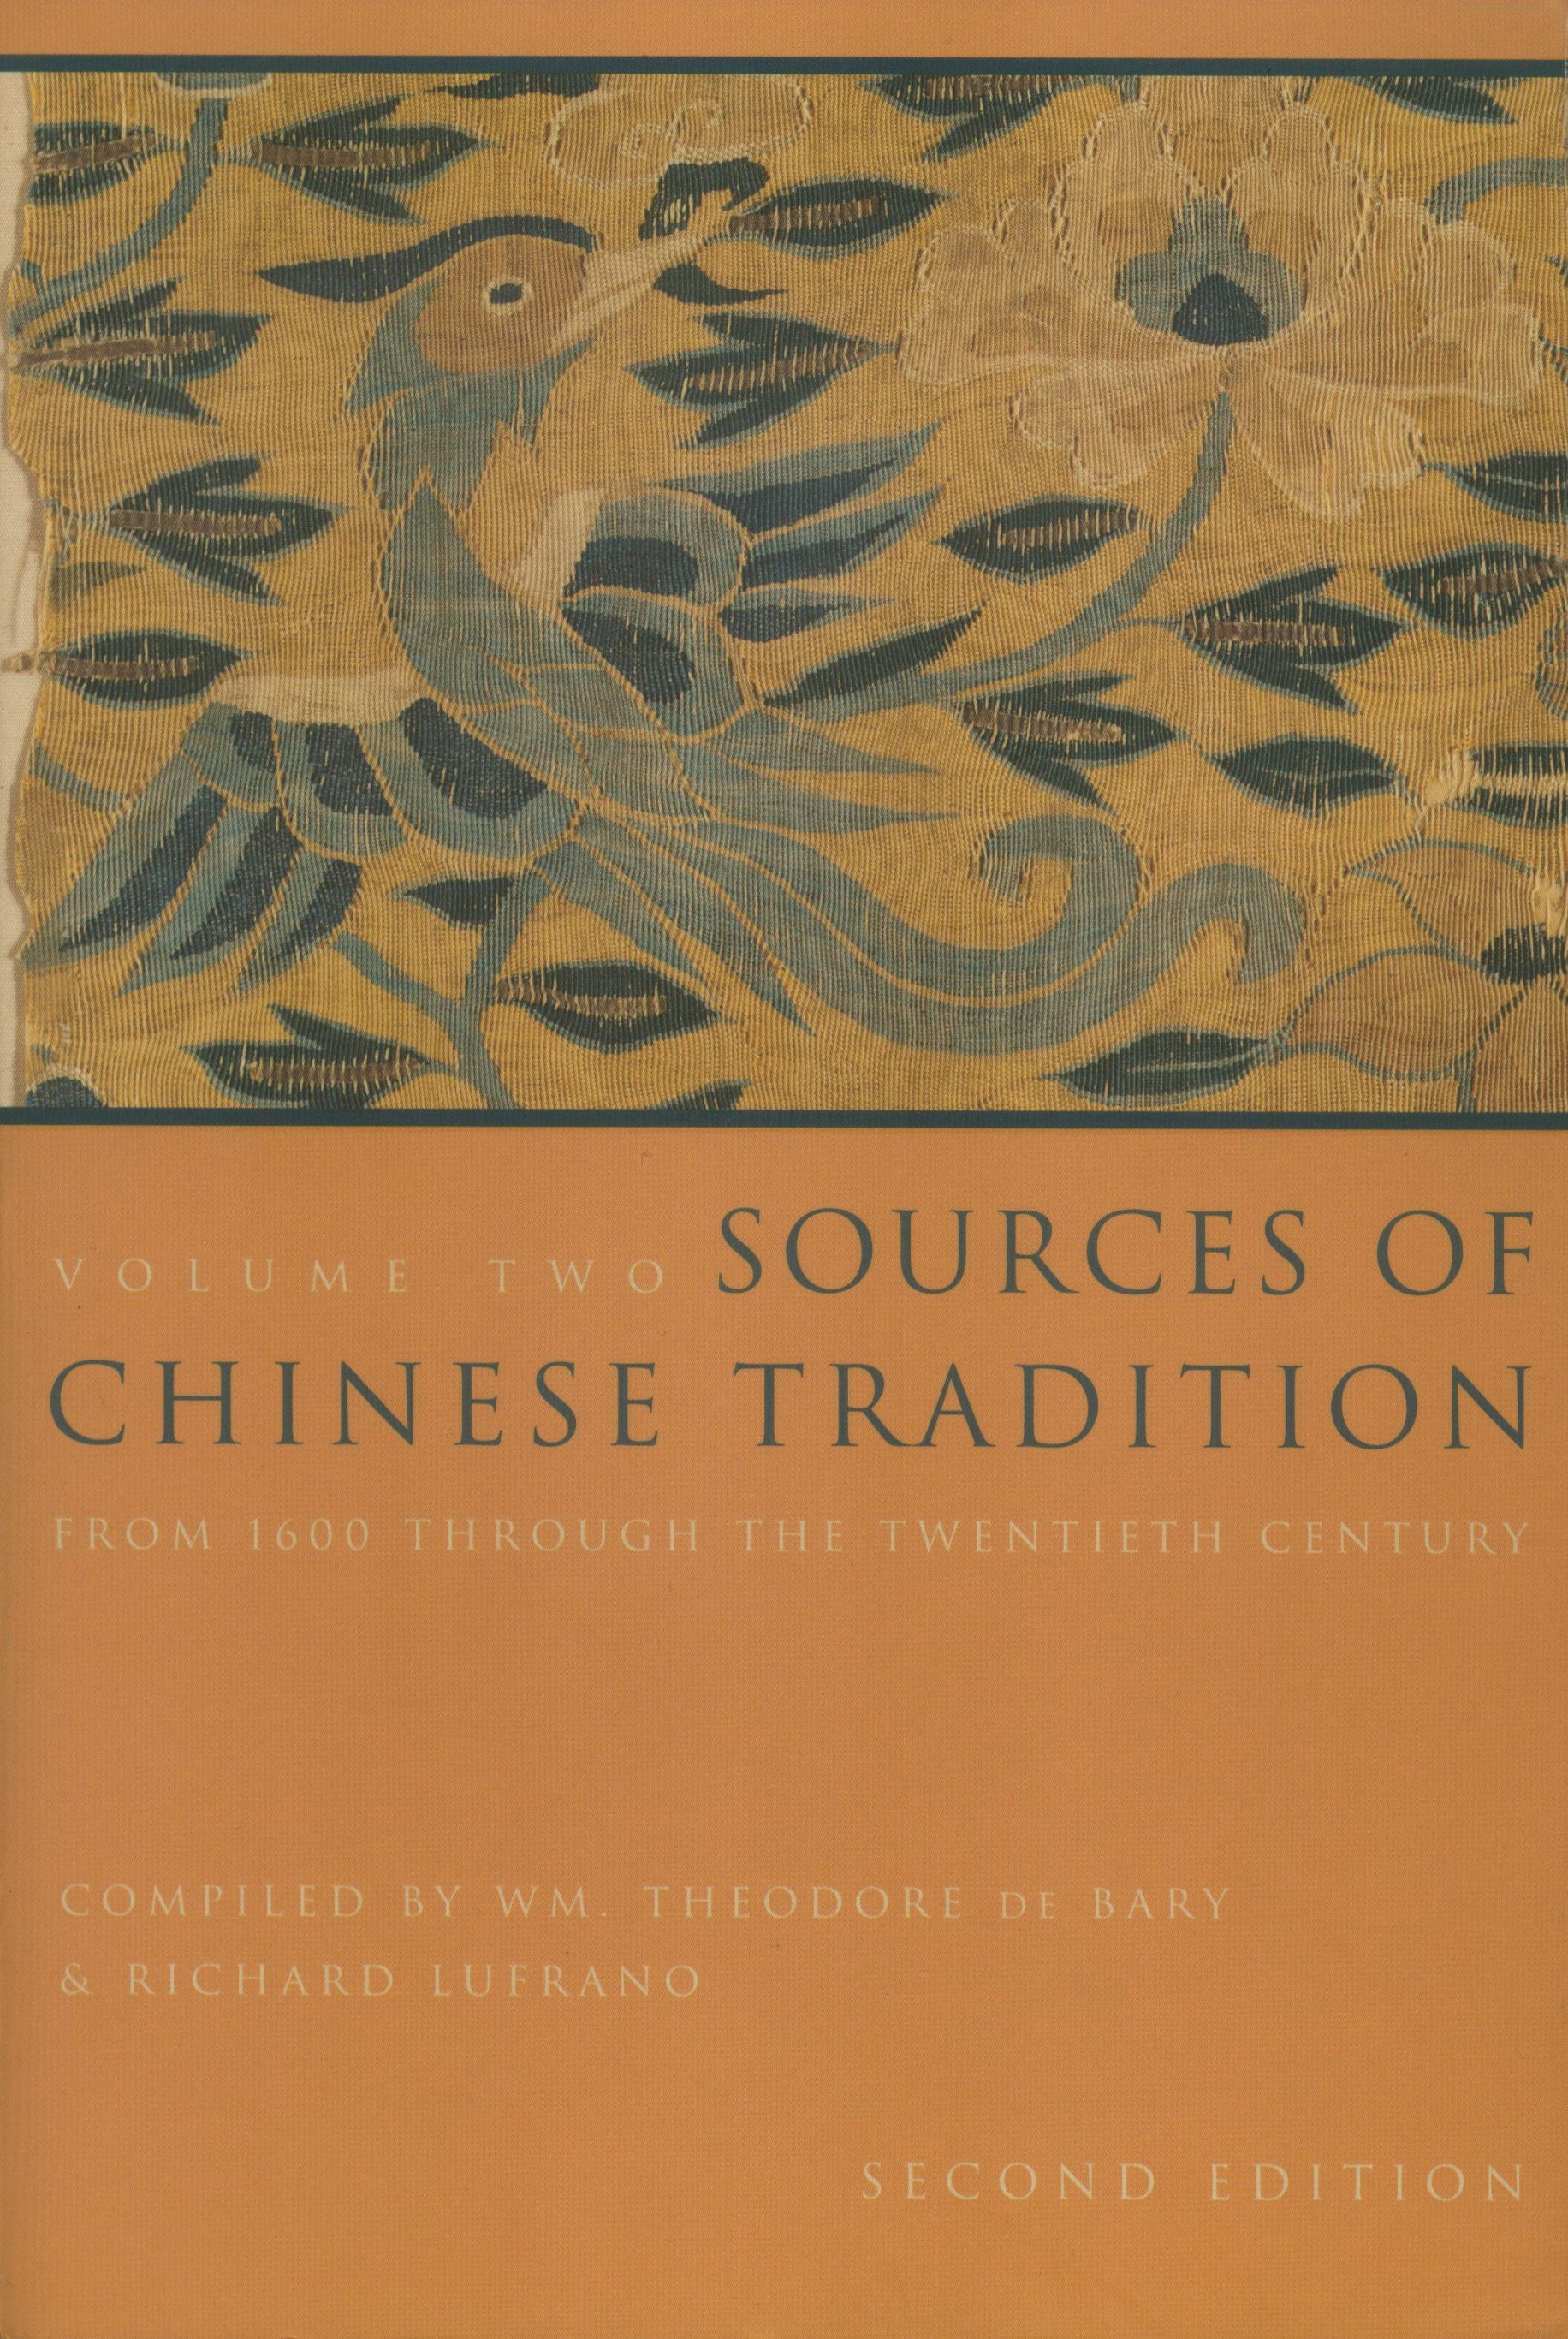 Abbildung von Bary / Lufrano | Sources of Chinese Tradition | second edition | 2001